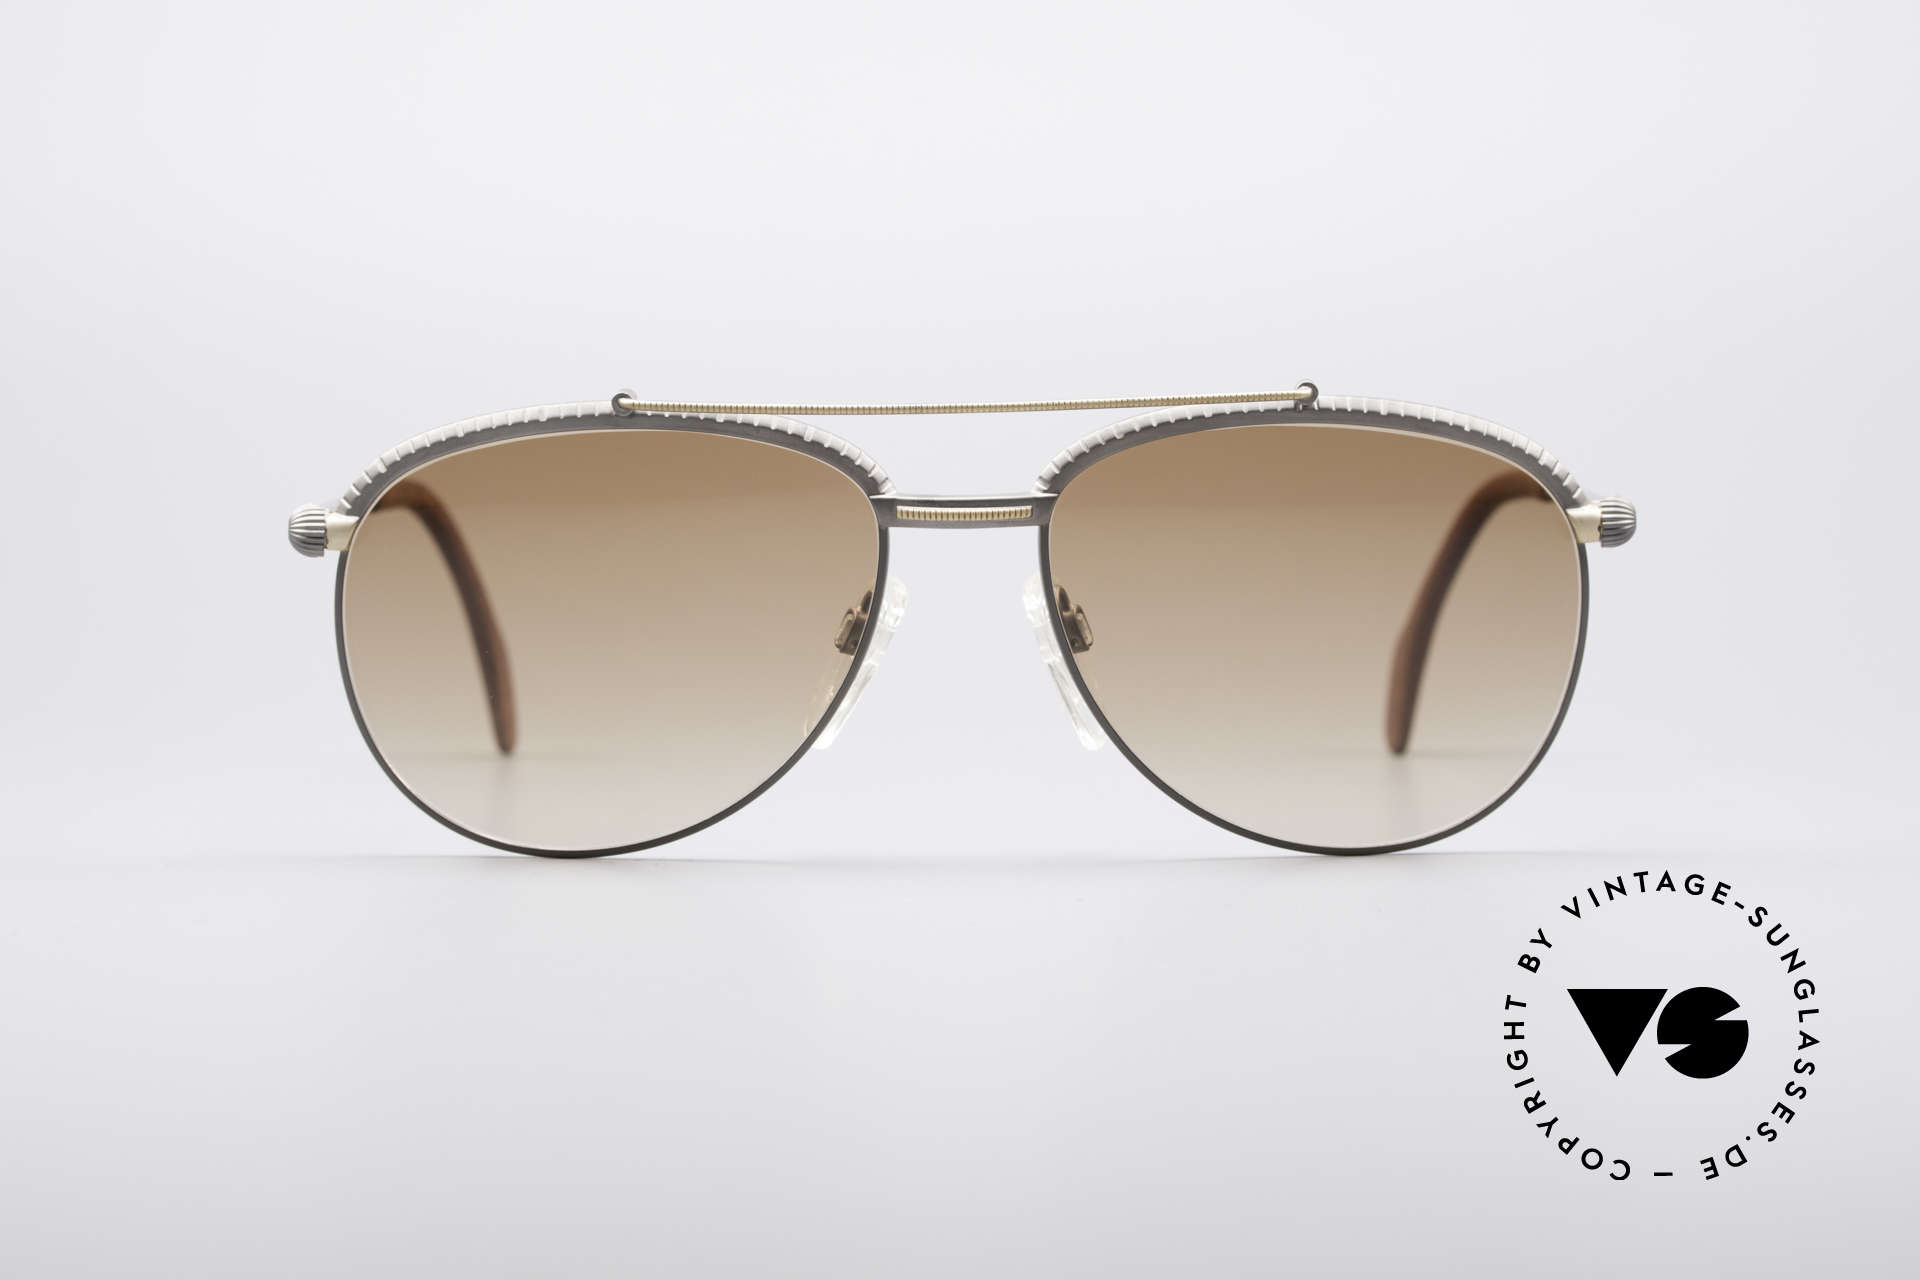 Longines 0161 80's Luxury Sunglasses, high-end 'made in Germany' quality; e.g. spring hinges, Made for Men